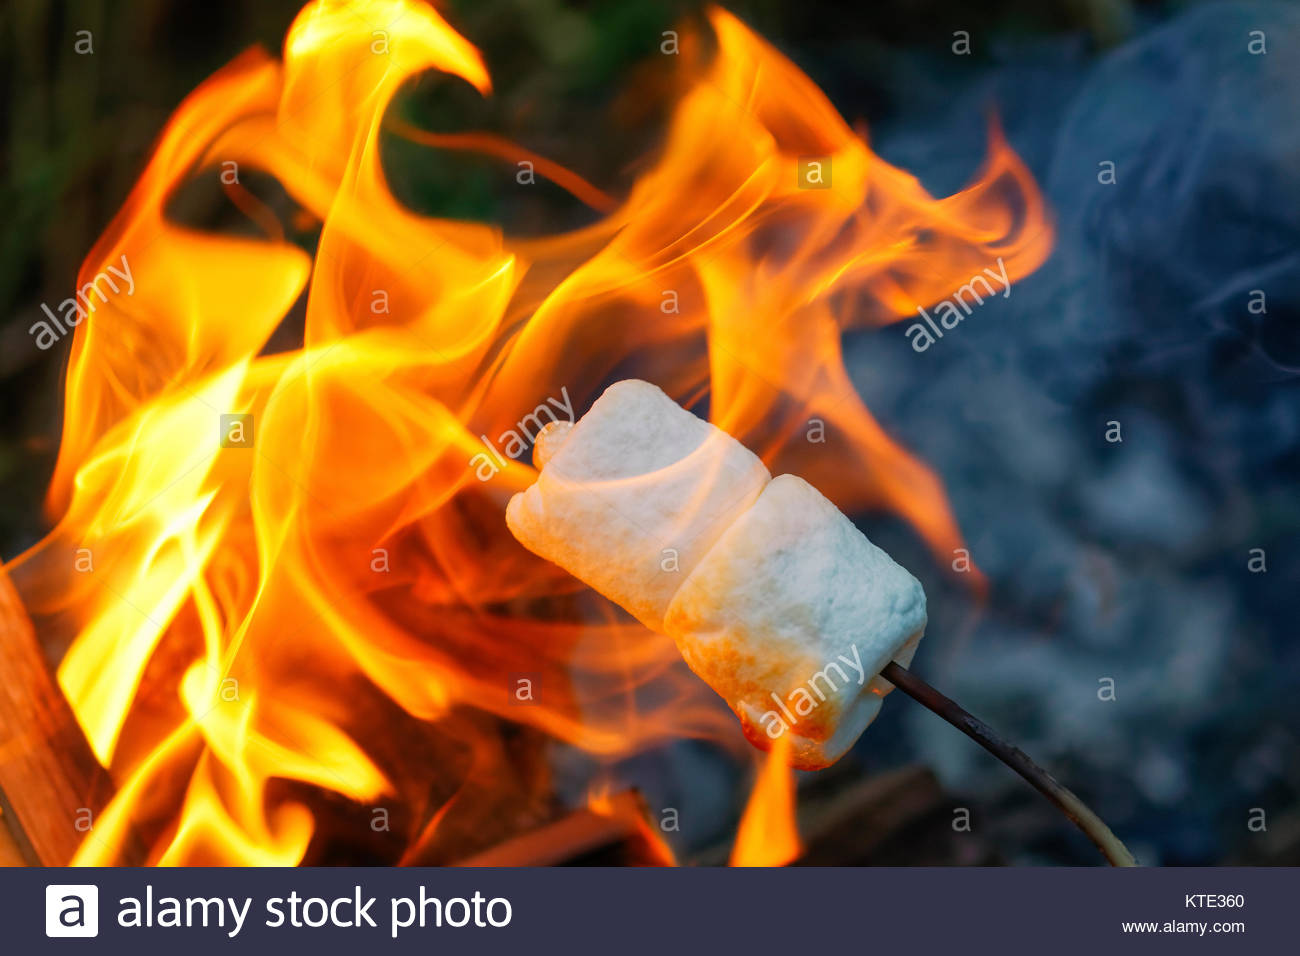 Roasting Marshmallows Over A Summer Campfire